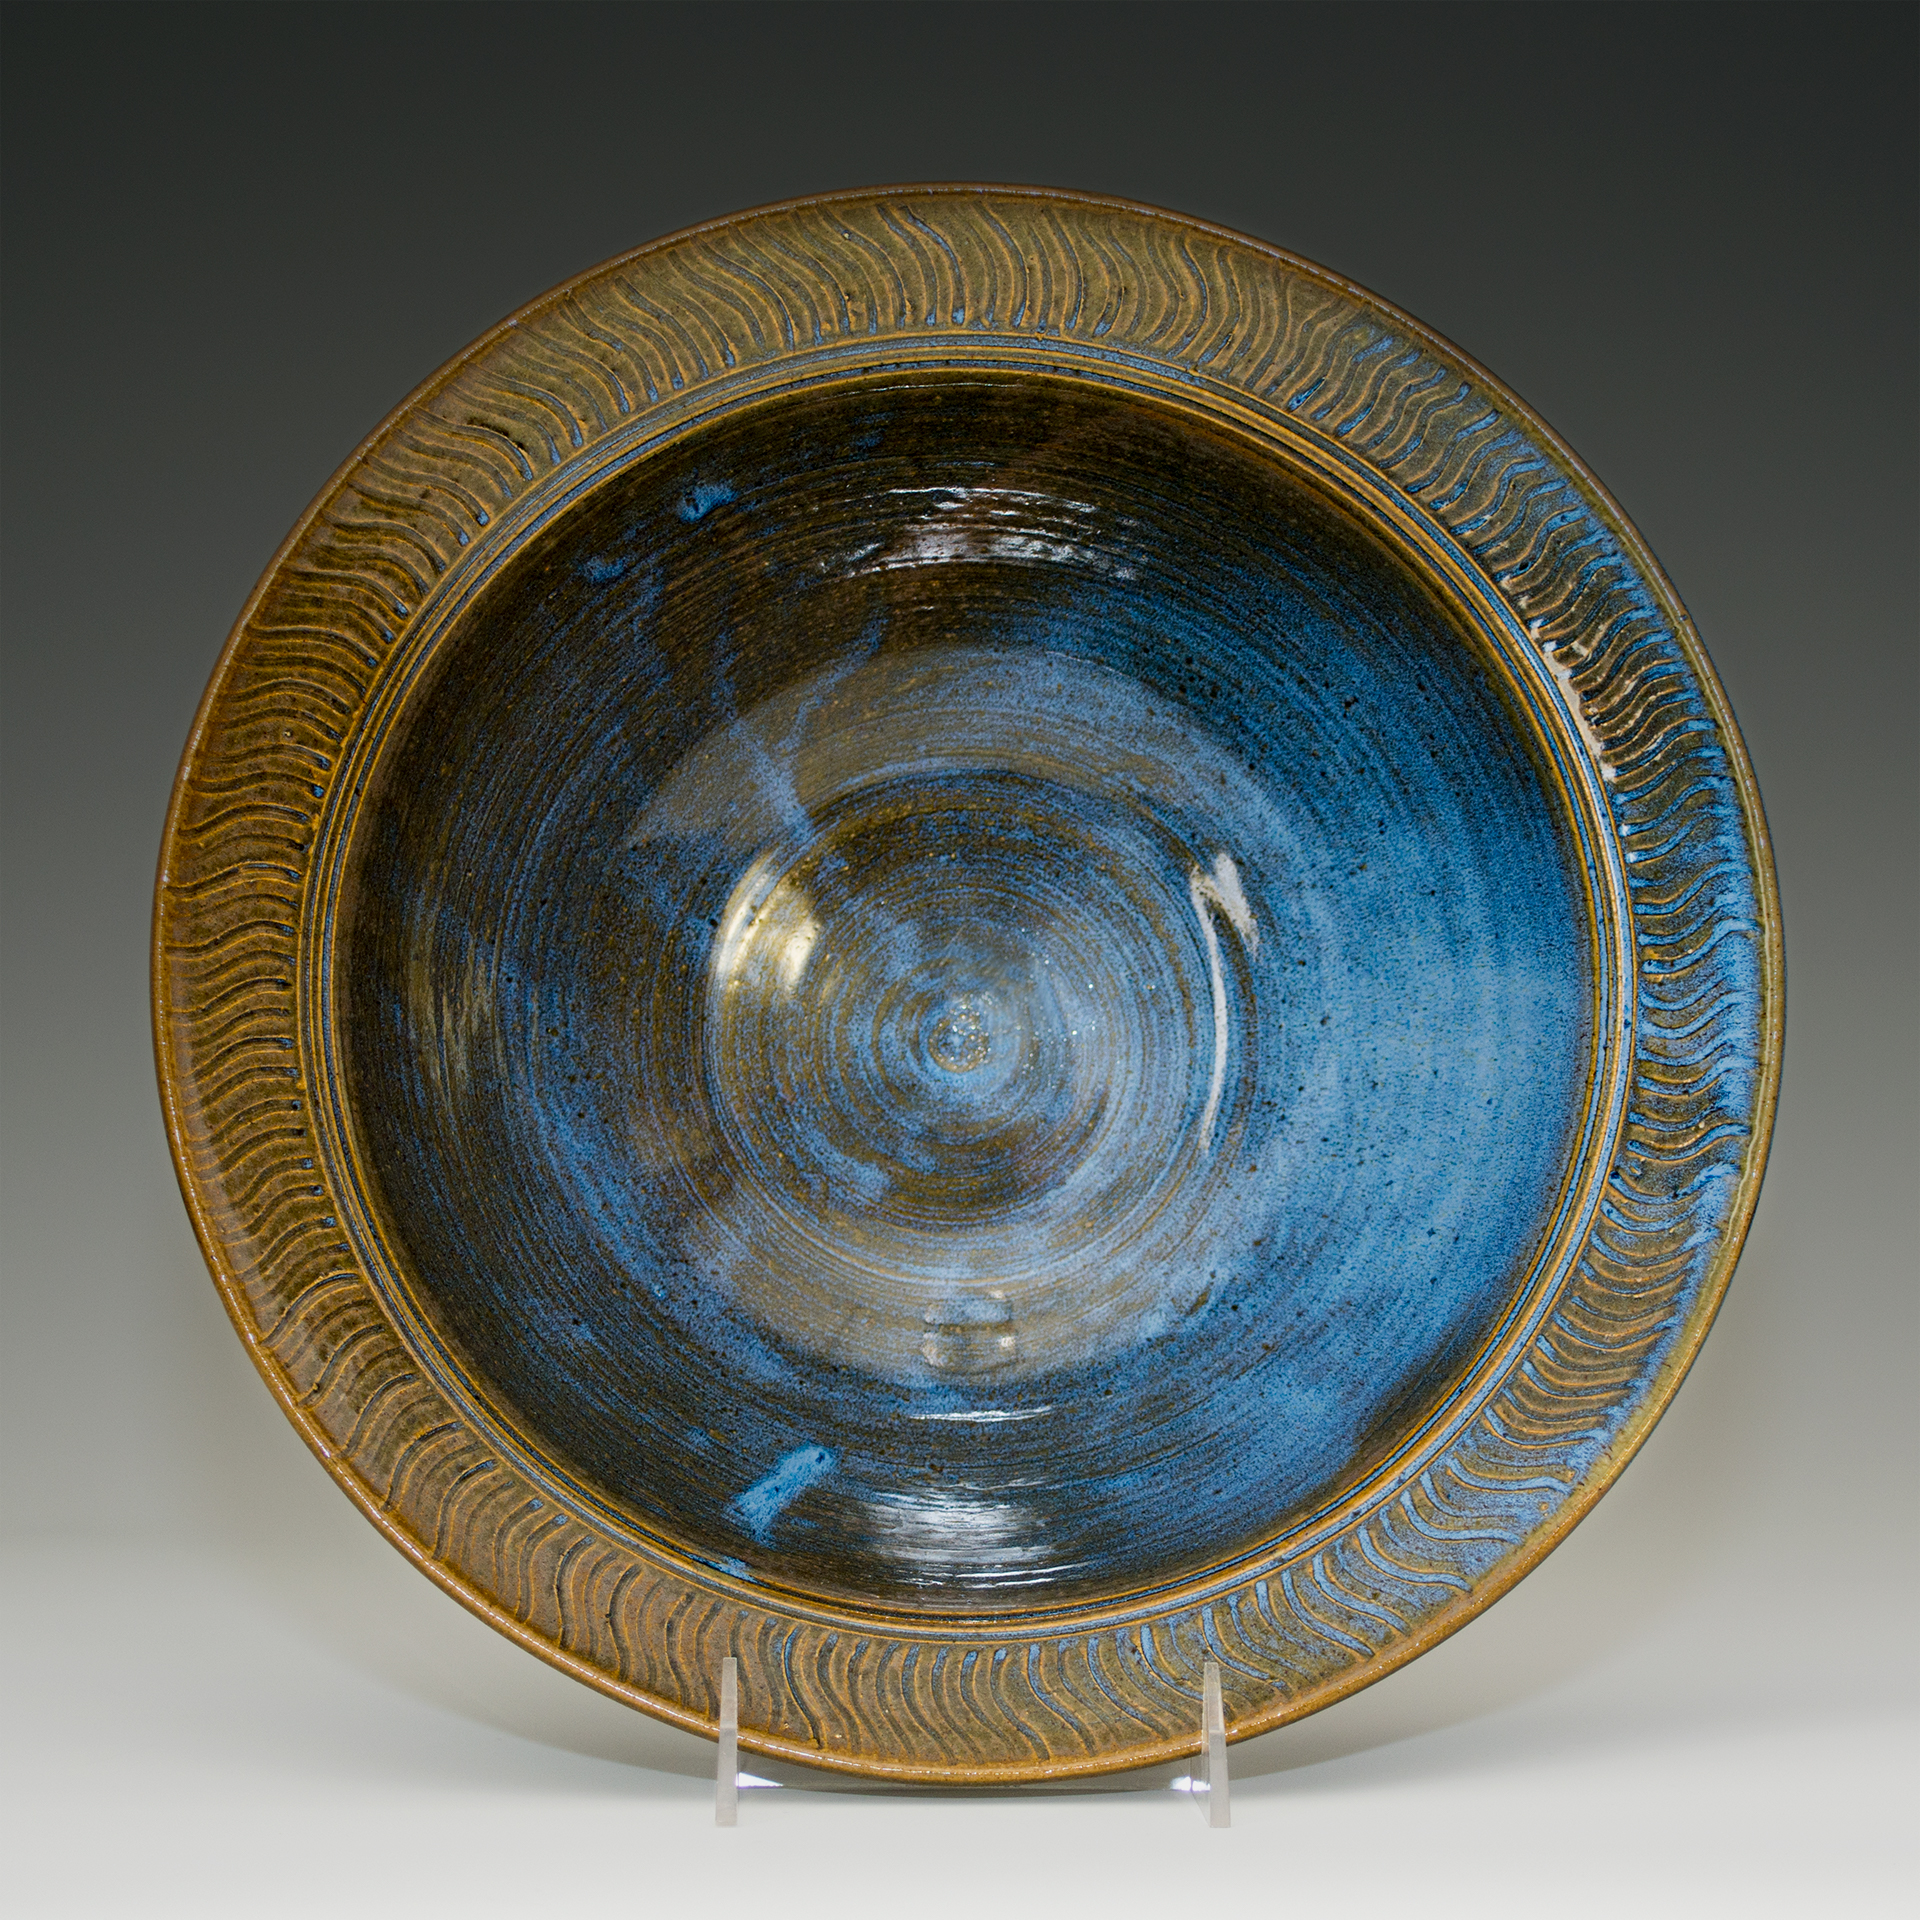 Serving Bowl with Textured Rim